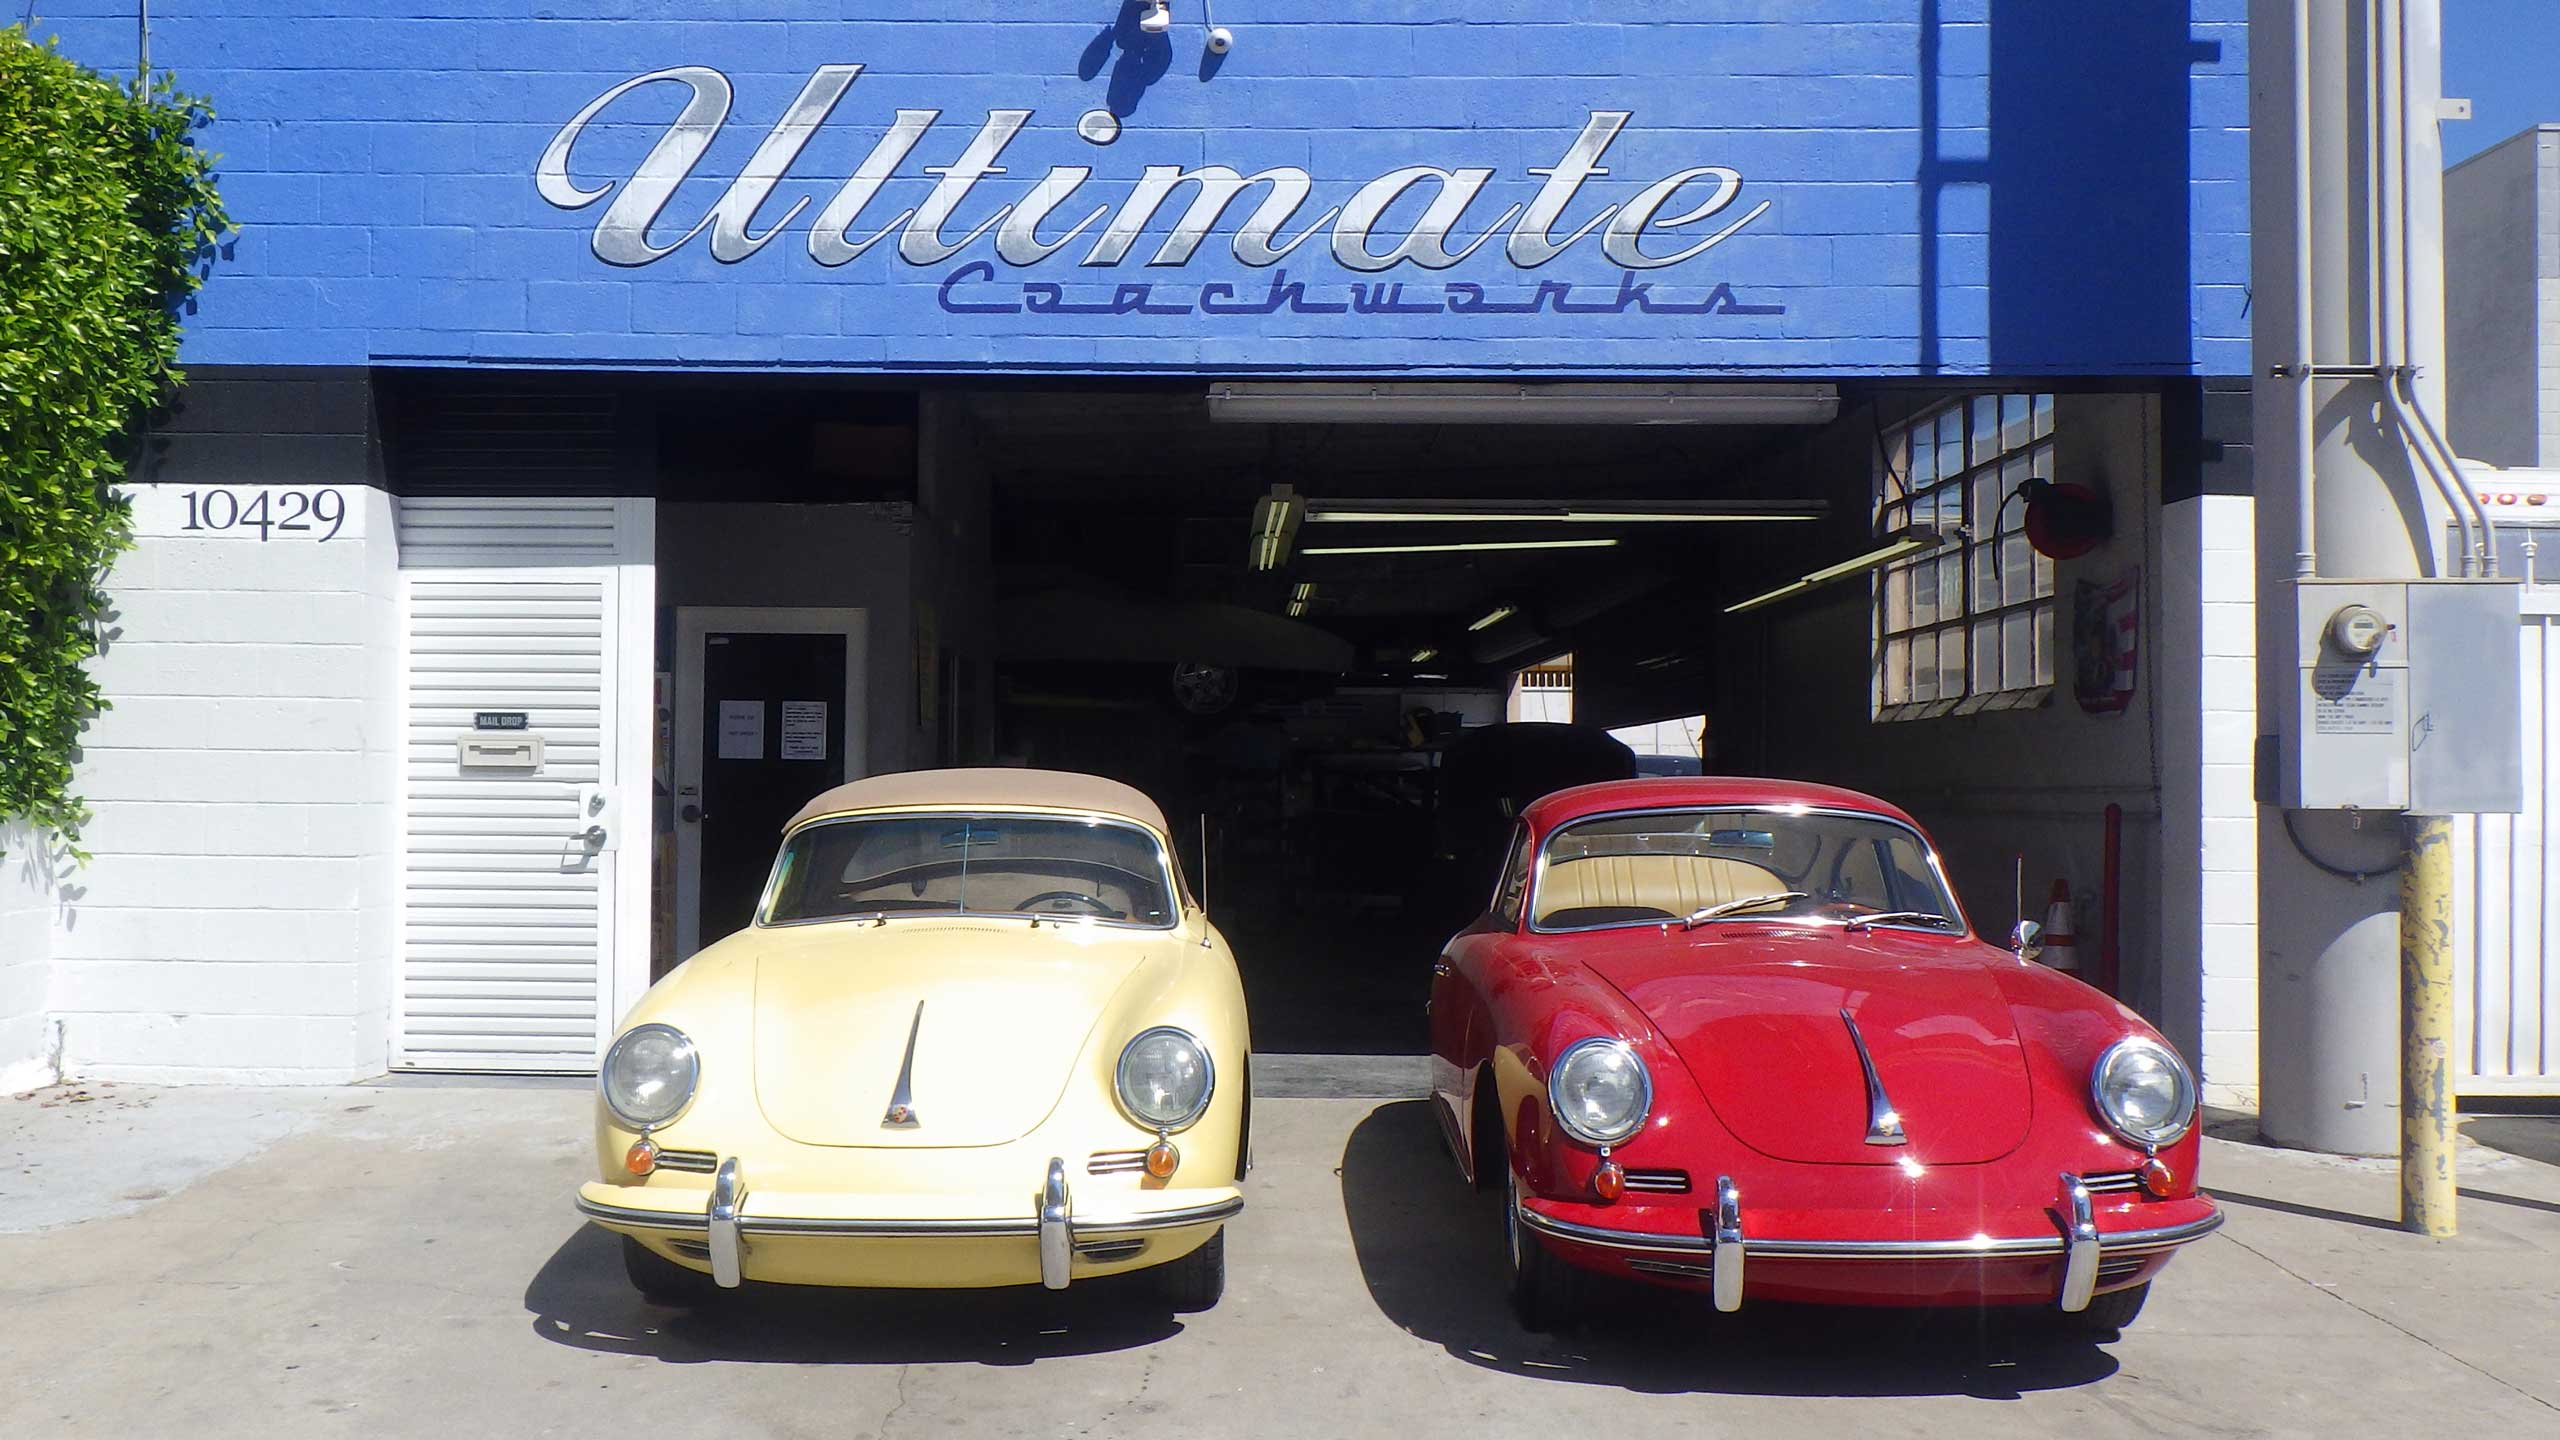 UC_2_car_front_storefront_2560x1440-005